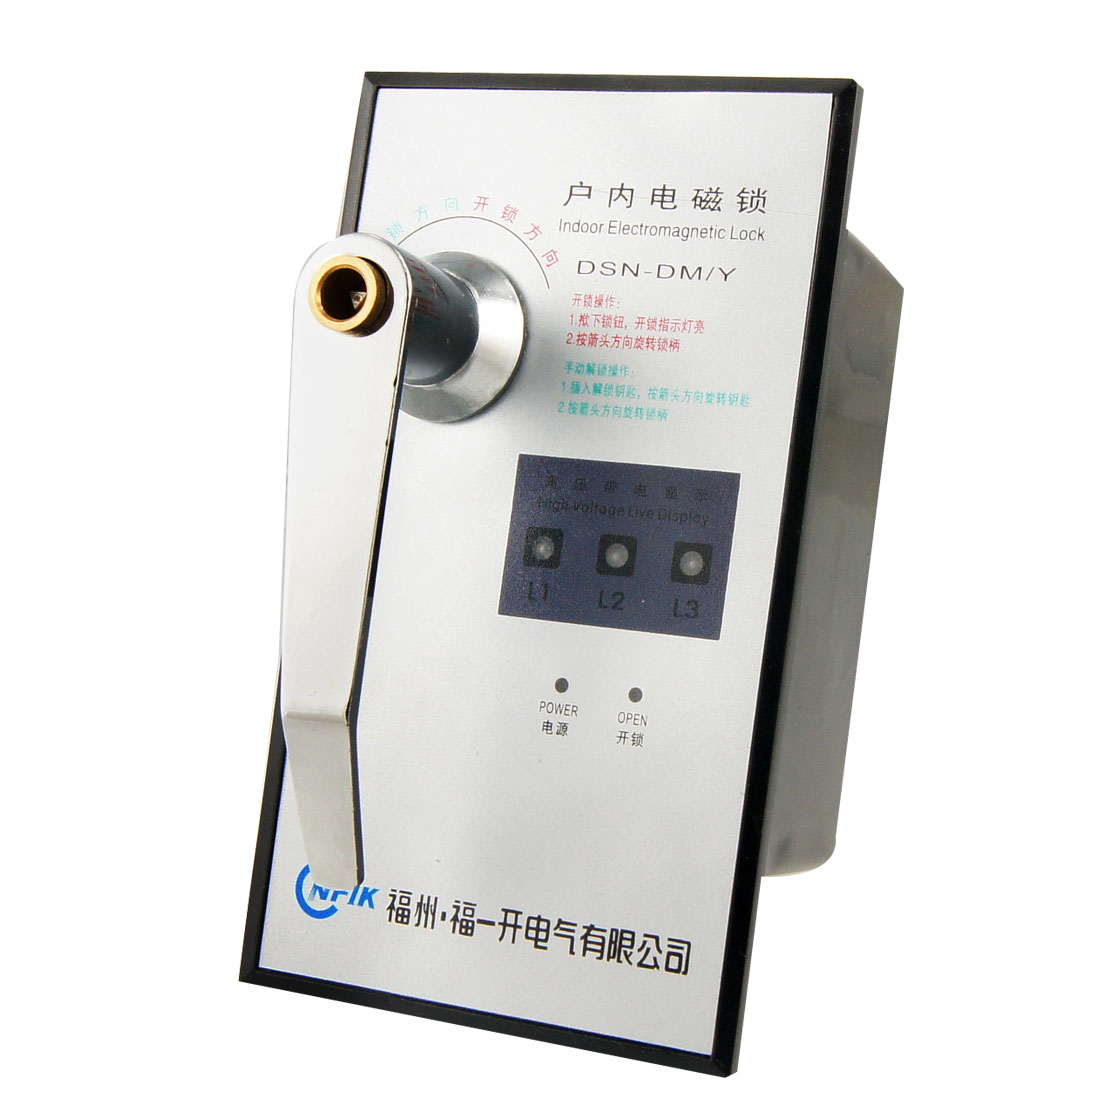 Indoor-Electromagnetic-Lock-DSN-DMY-Model-7-2-40-5KV-Rated-Voltage